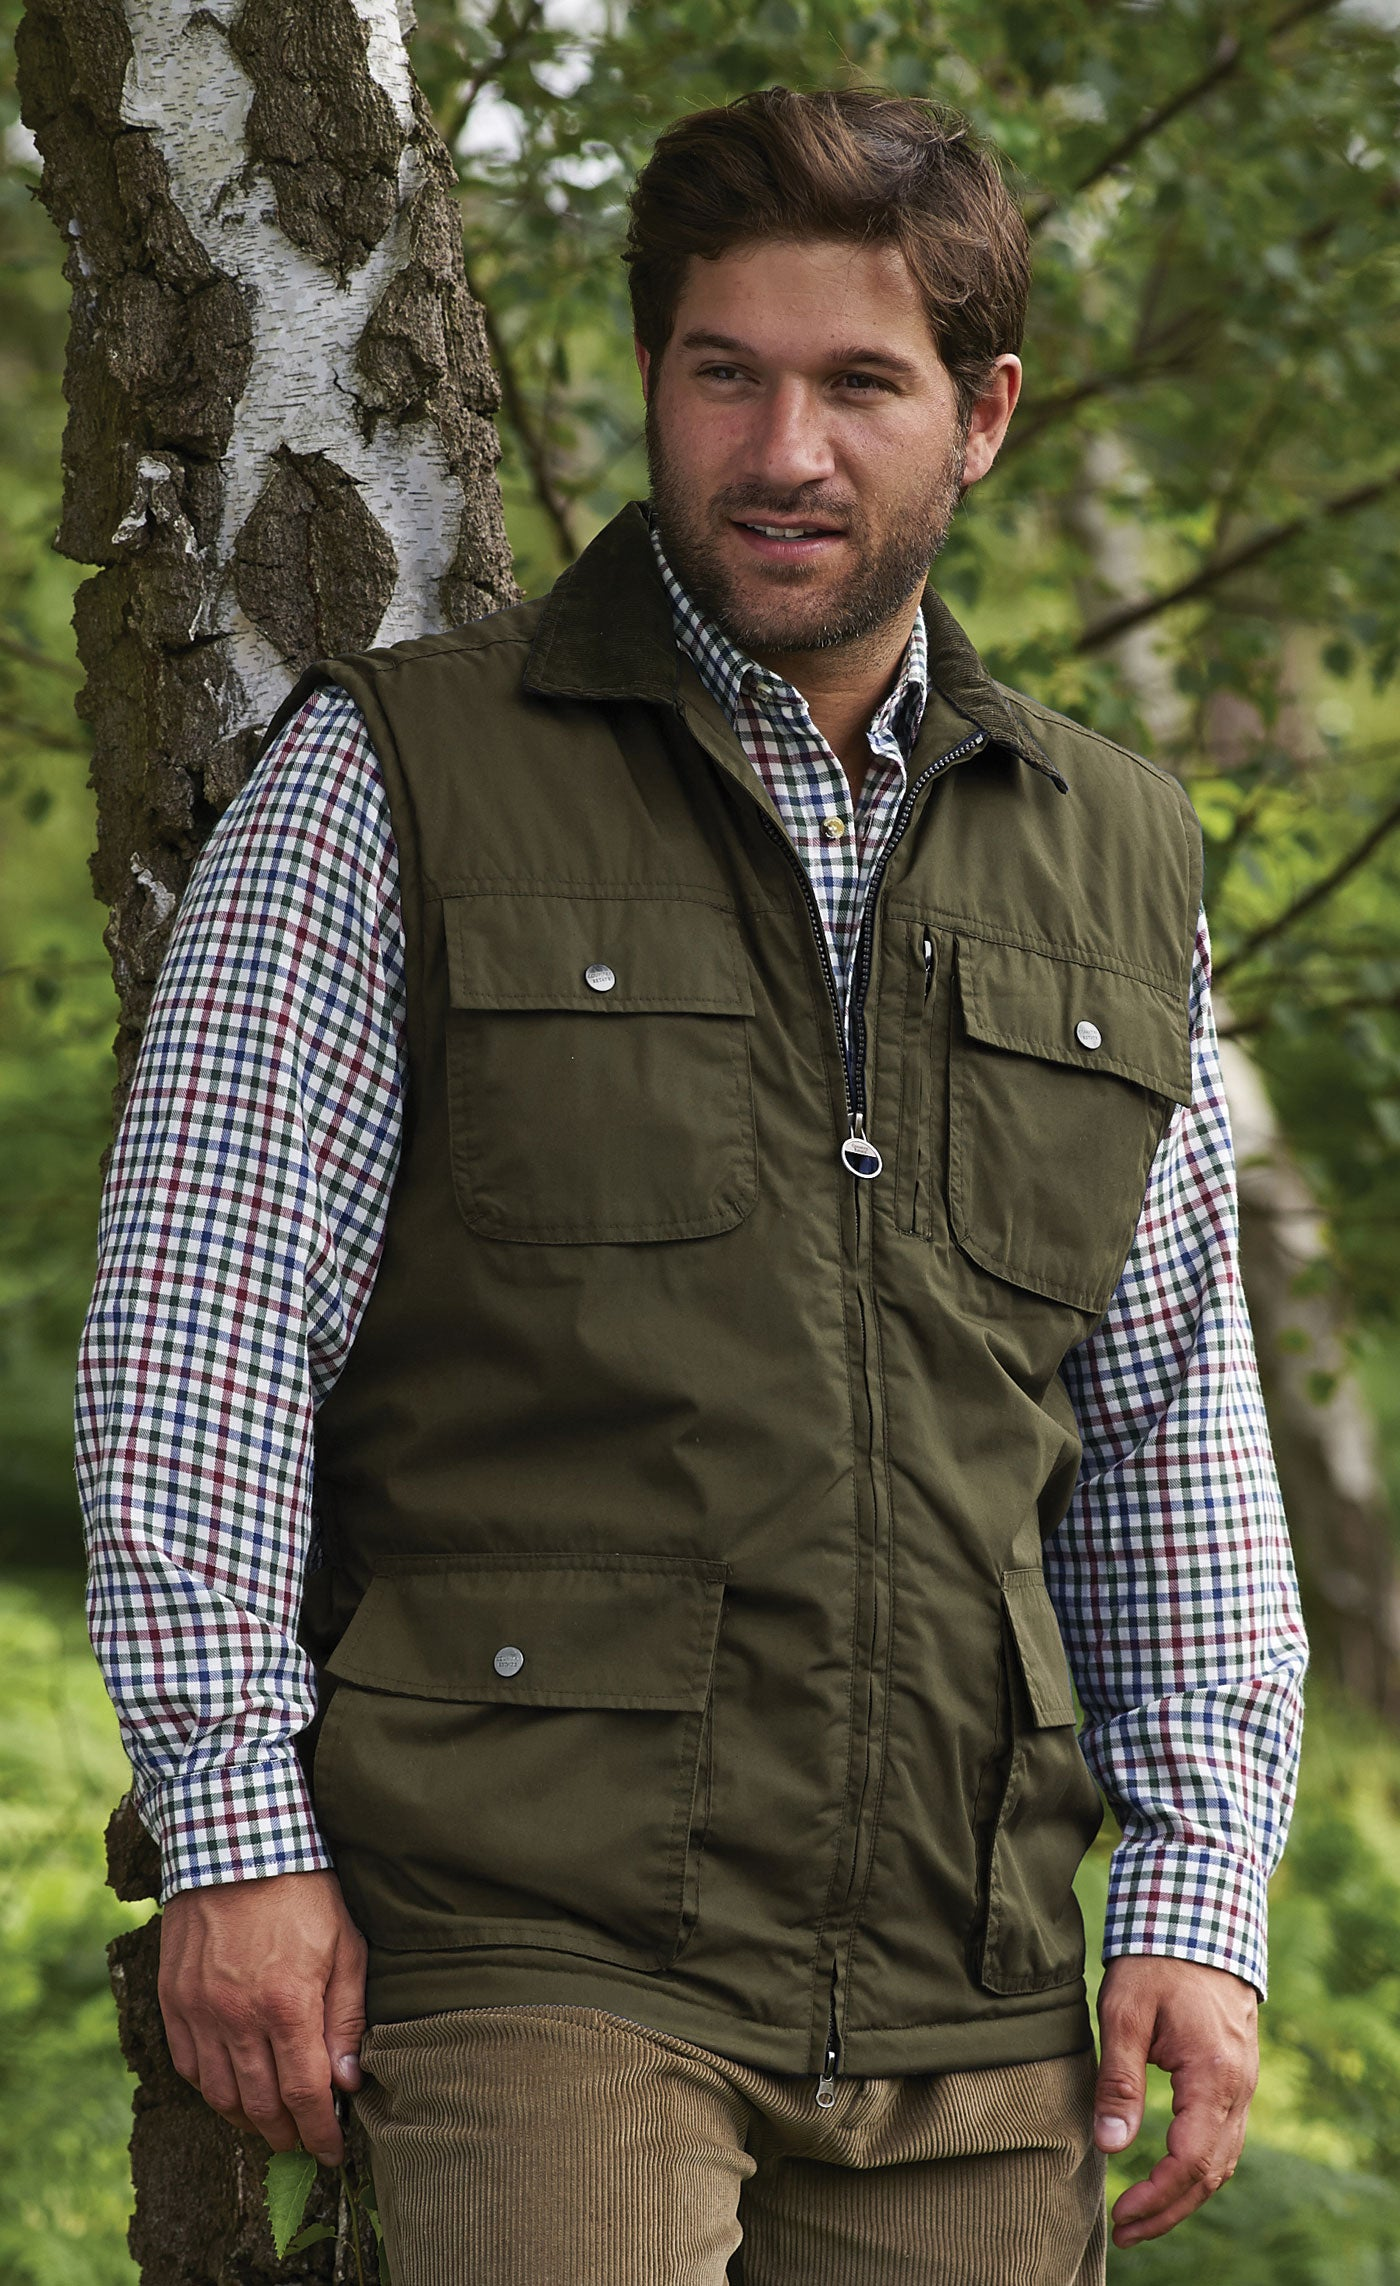 Silverdale Multi Pocket Waistcoat from Champion Outdoor in olive